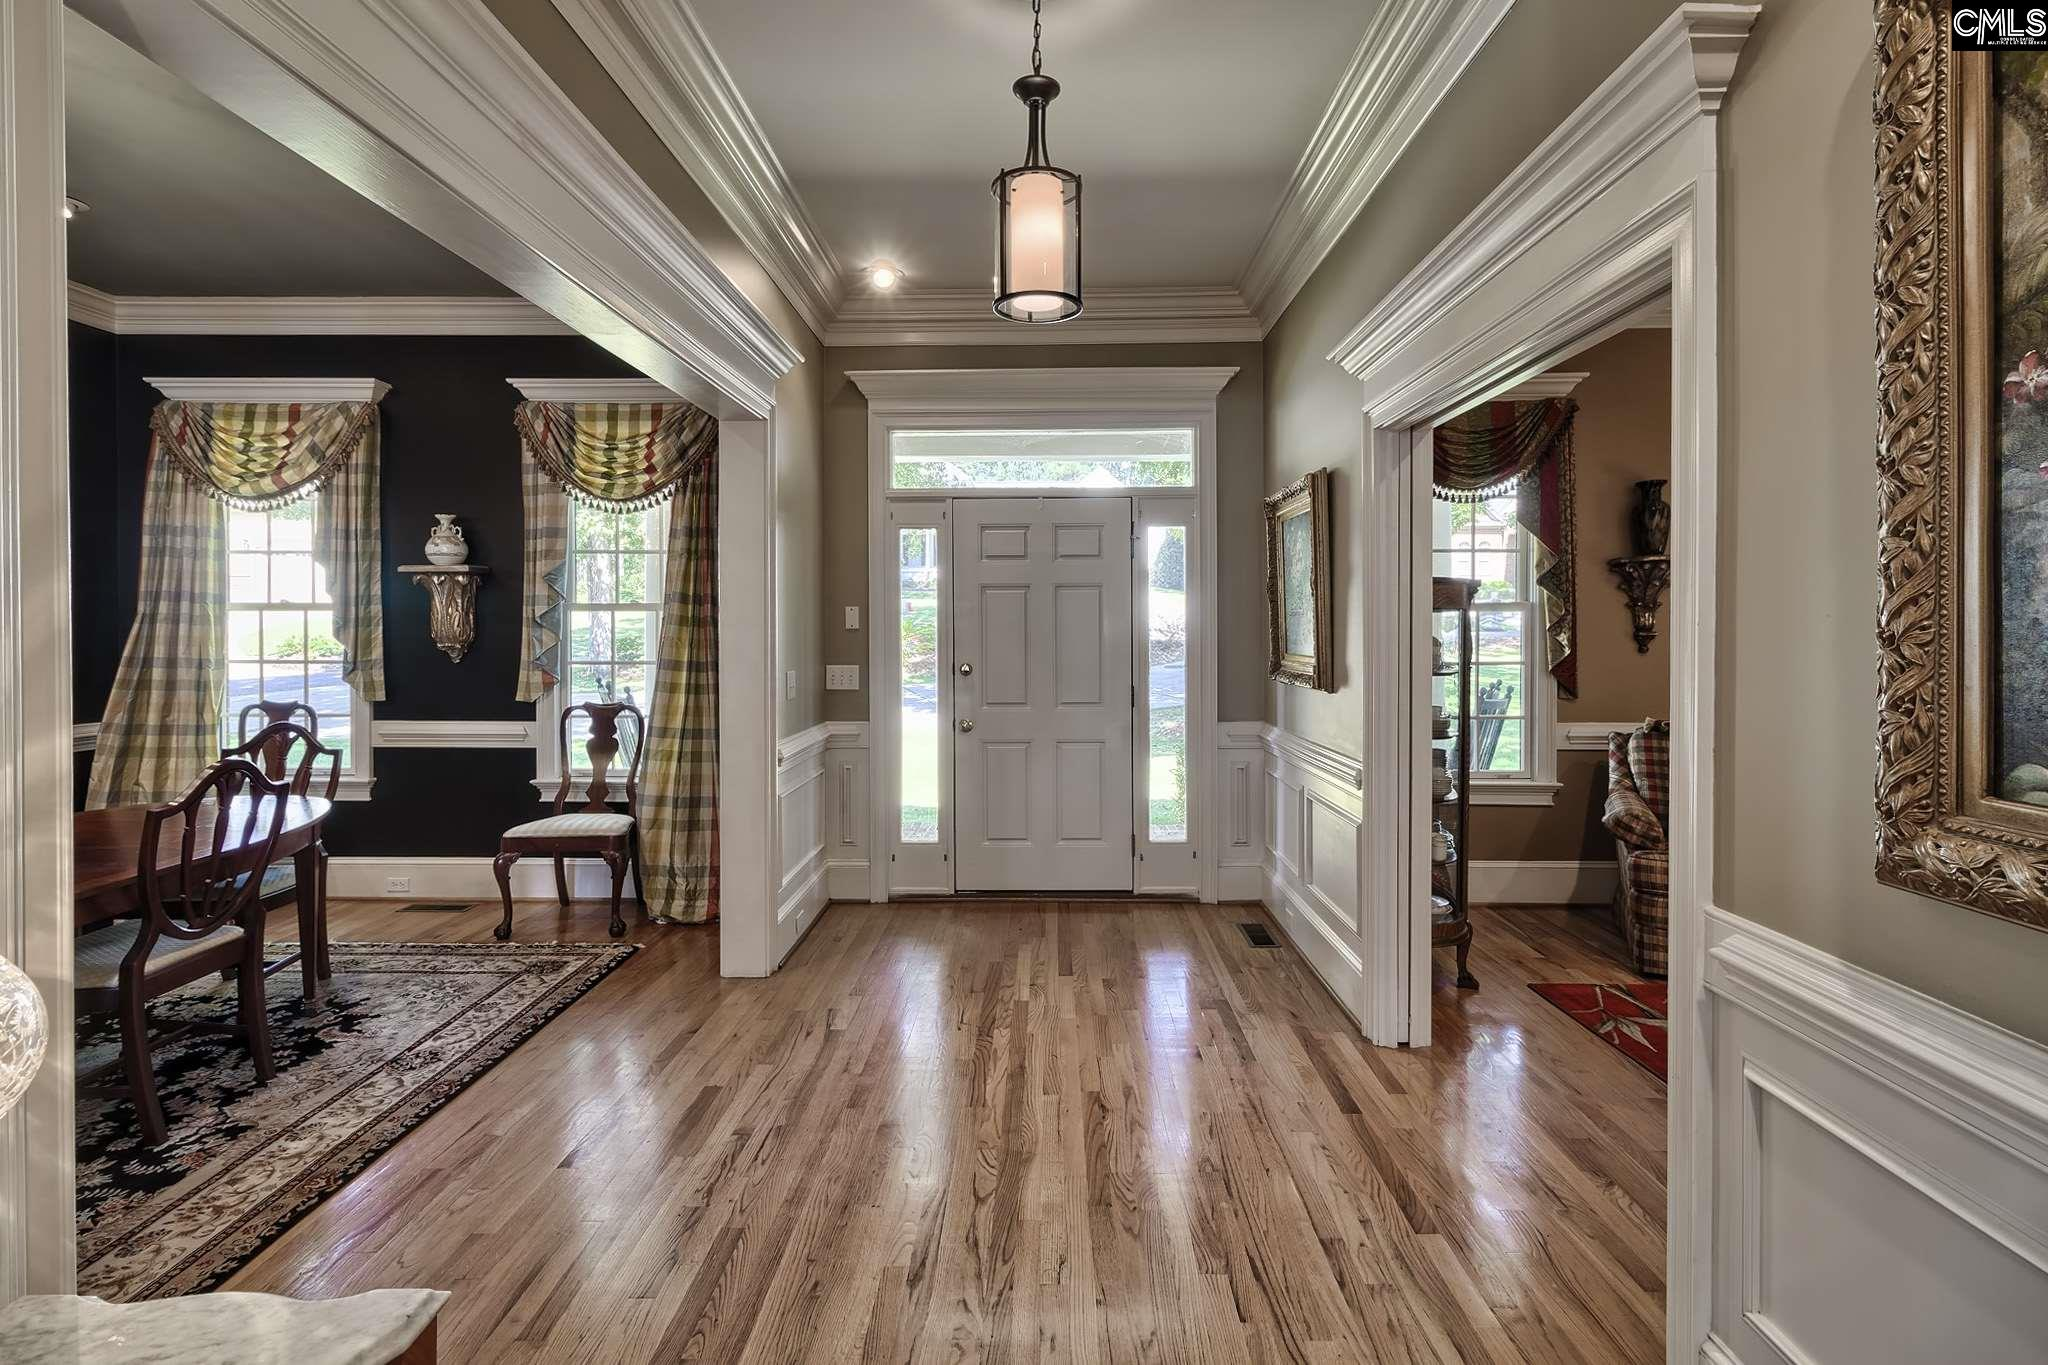 409 Greenetree Lexington, SC 29072